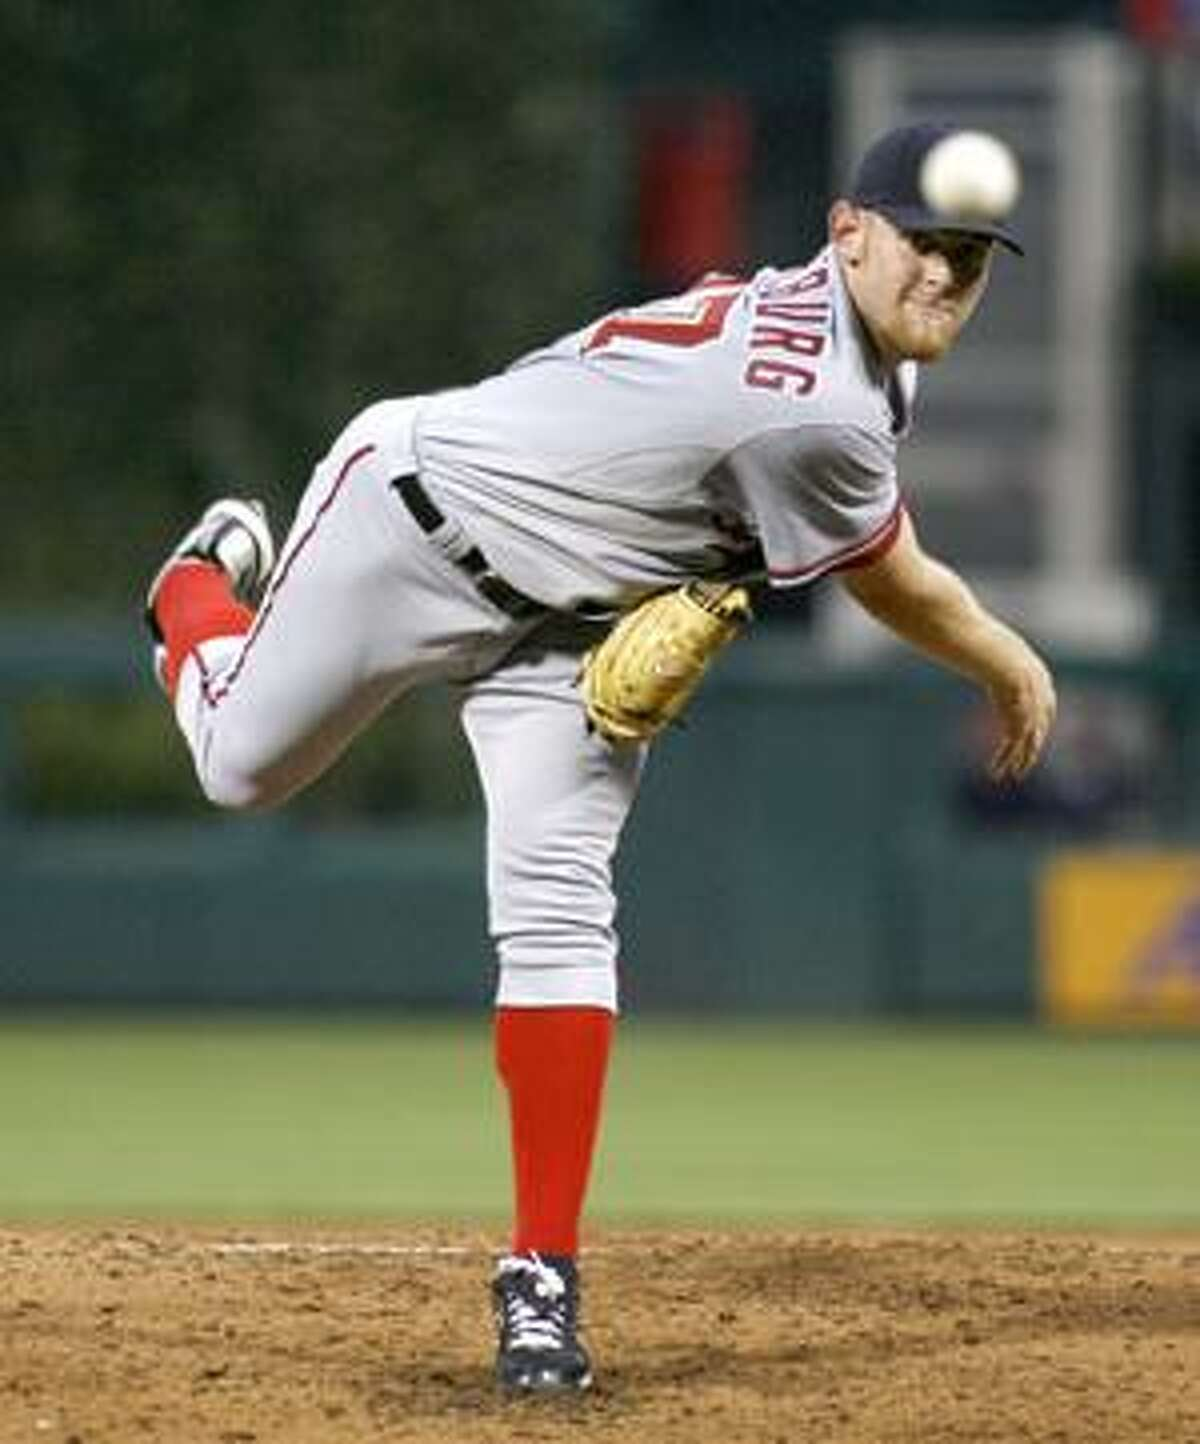 Washington Nationals' starting pitcher Stephen Strasburg throws against the Philadelphia Phillies in the second inning of a baseball game Saturday, Aug. 21, 2010, in Philadelphia. (AP Photo/H. Rumph Jr)